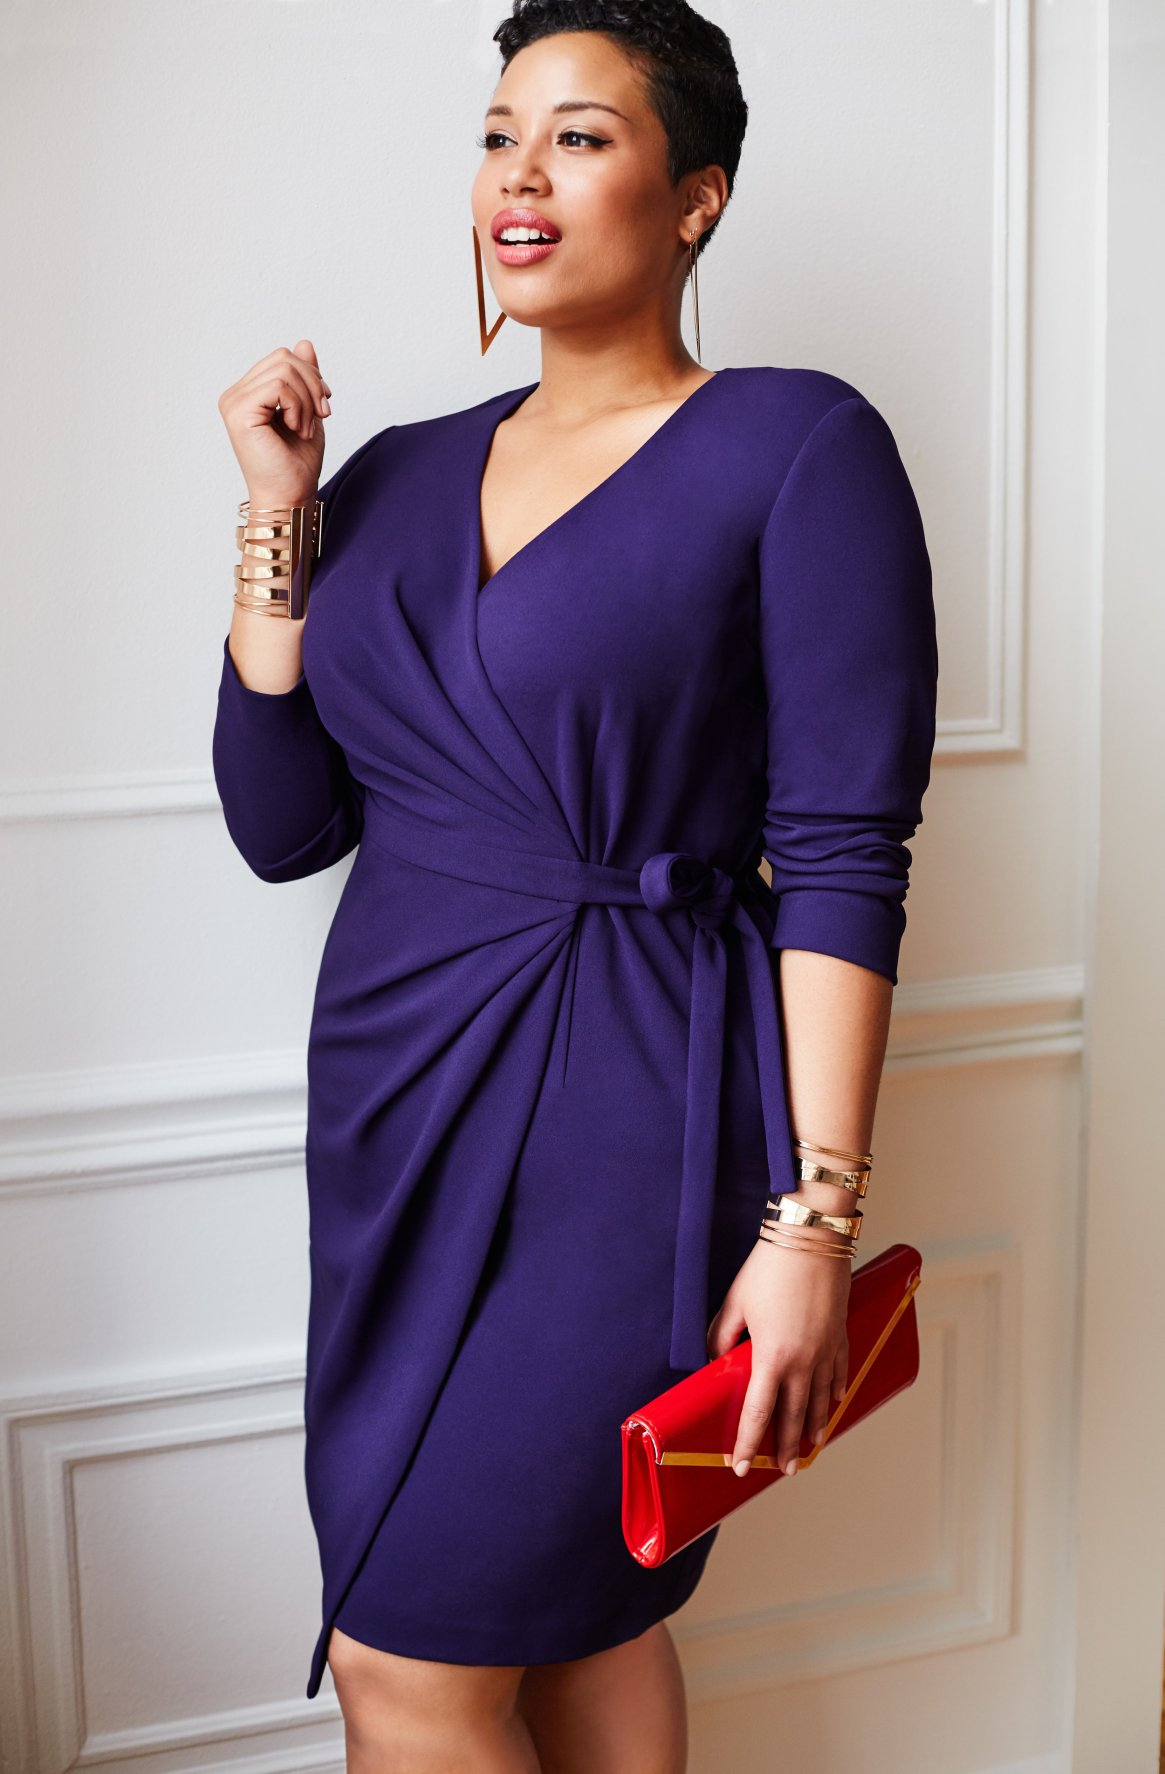 Alexandra Wrap Dress in Size 1X.jpg